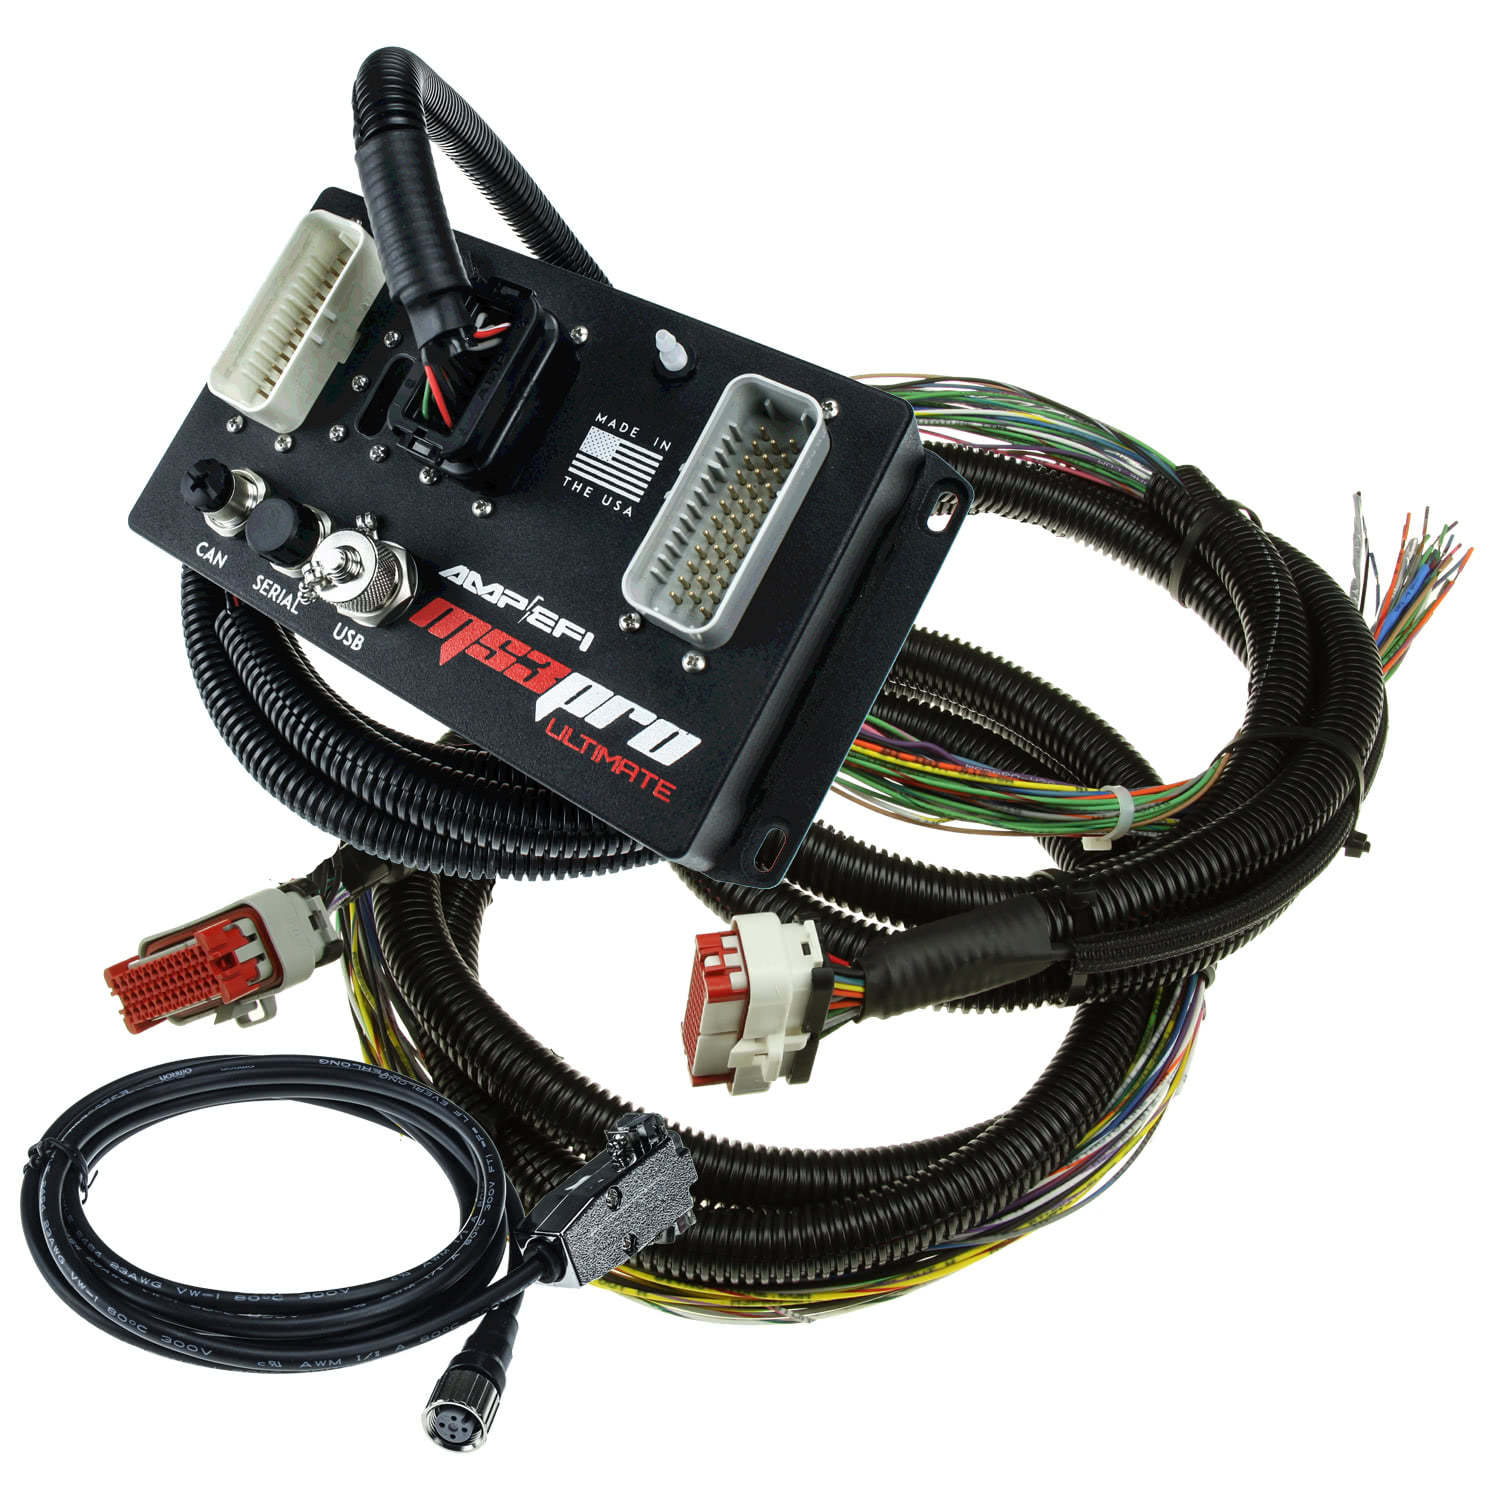 MS3V-U_Pkg Ultimate Wire Harness For Cars on fuse box for cars, tires for cars, air cleaner for cars, ignition switch for cars, filter for cars, speaker for cars, radiator for cars, wheels for cars, lights for cars, water pump for cars, starter for cars, flywheel for cars, horn for cars, batteries for cars, power supply for cars, control panel for cars, motor for cars, remote control for cars, headlight for cars, hood for cars,